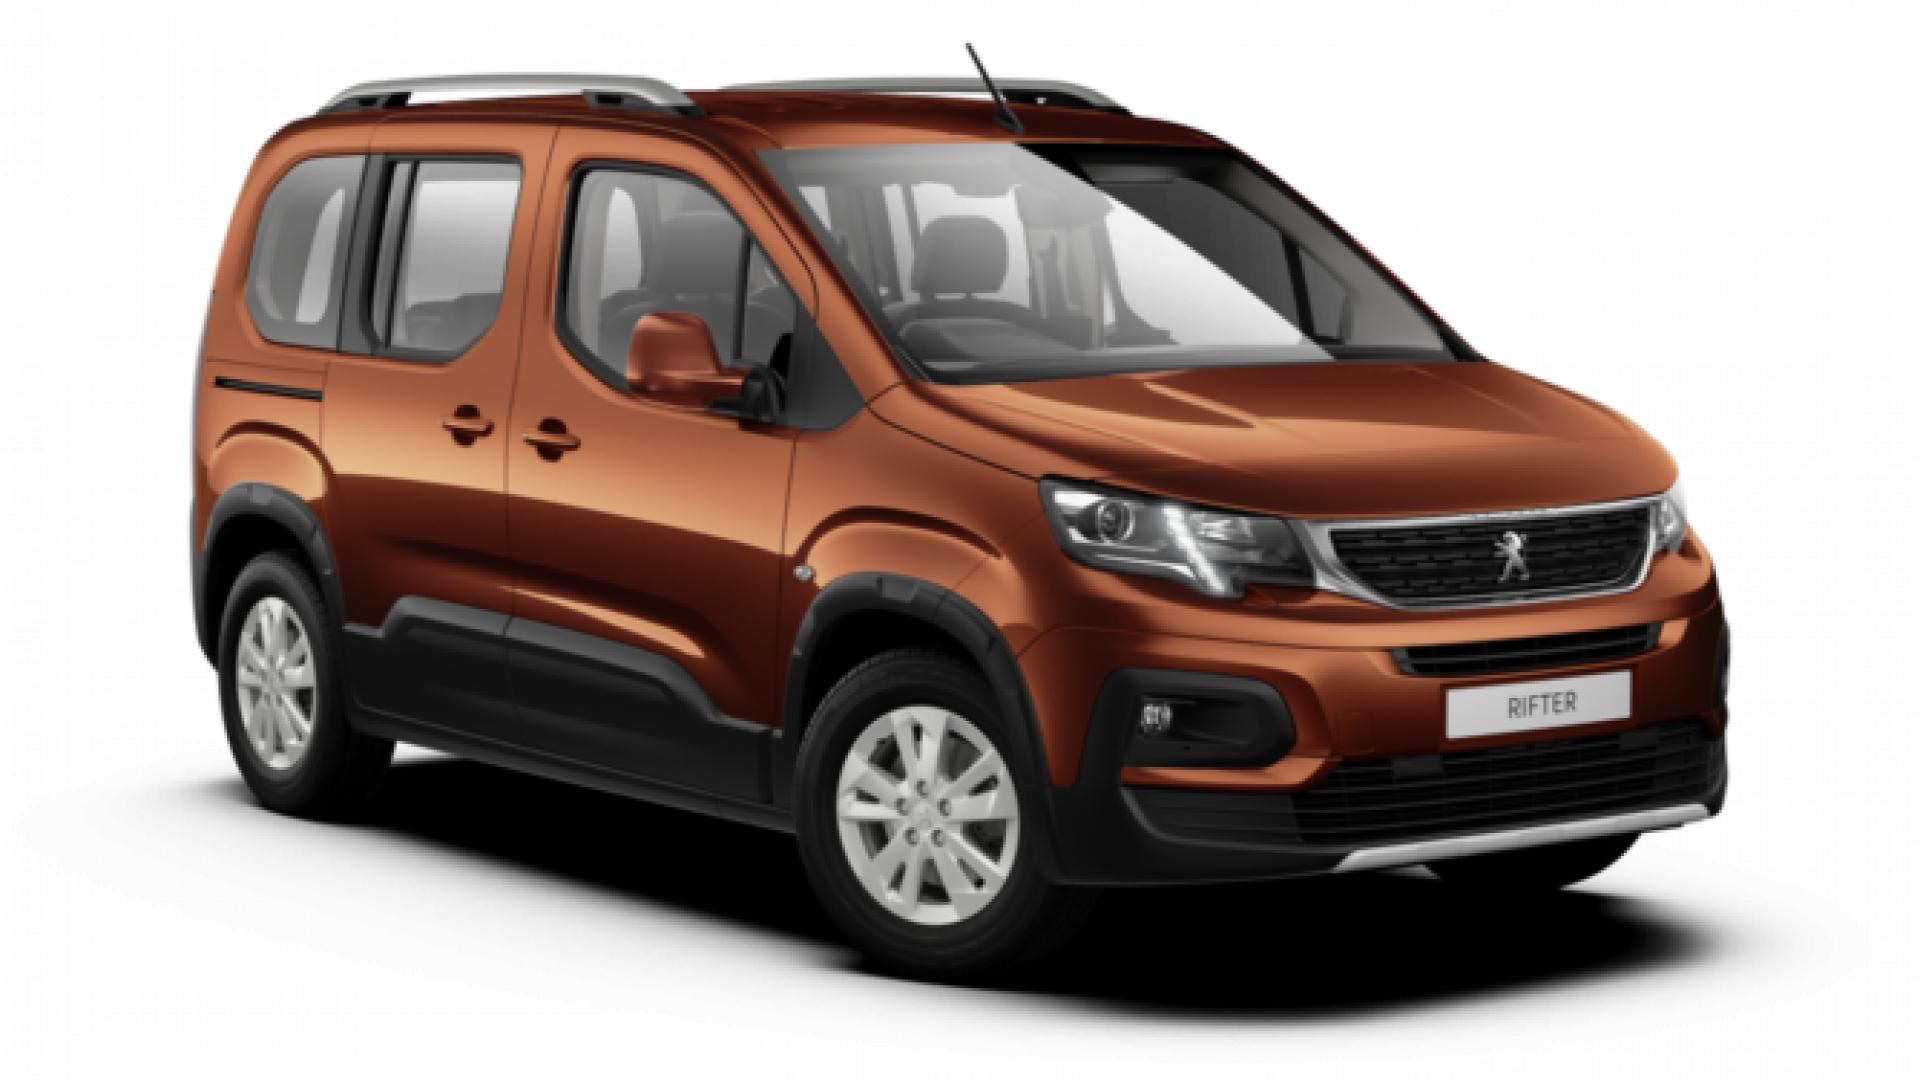 new peugeot rifter sw 1 5 bluehdi 130 allure 5dr robins and day. Black Bedroom Furniture Sets. Home Design Ideas